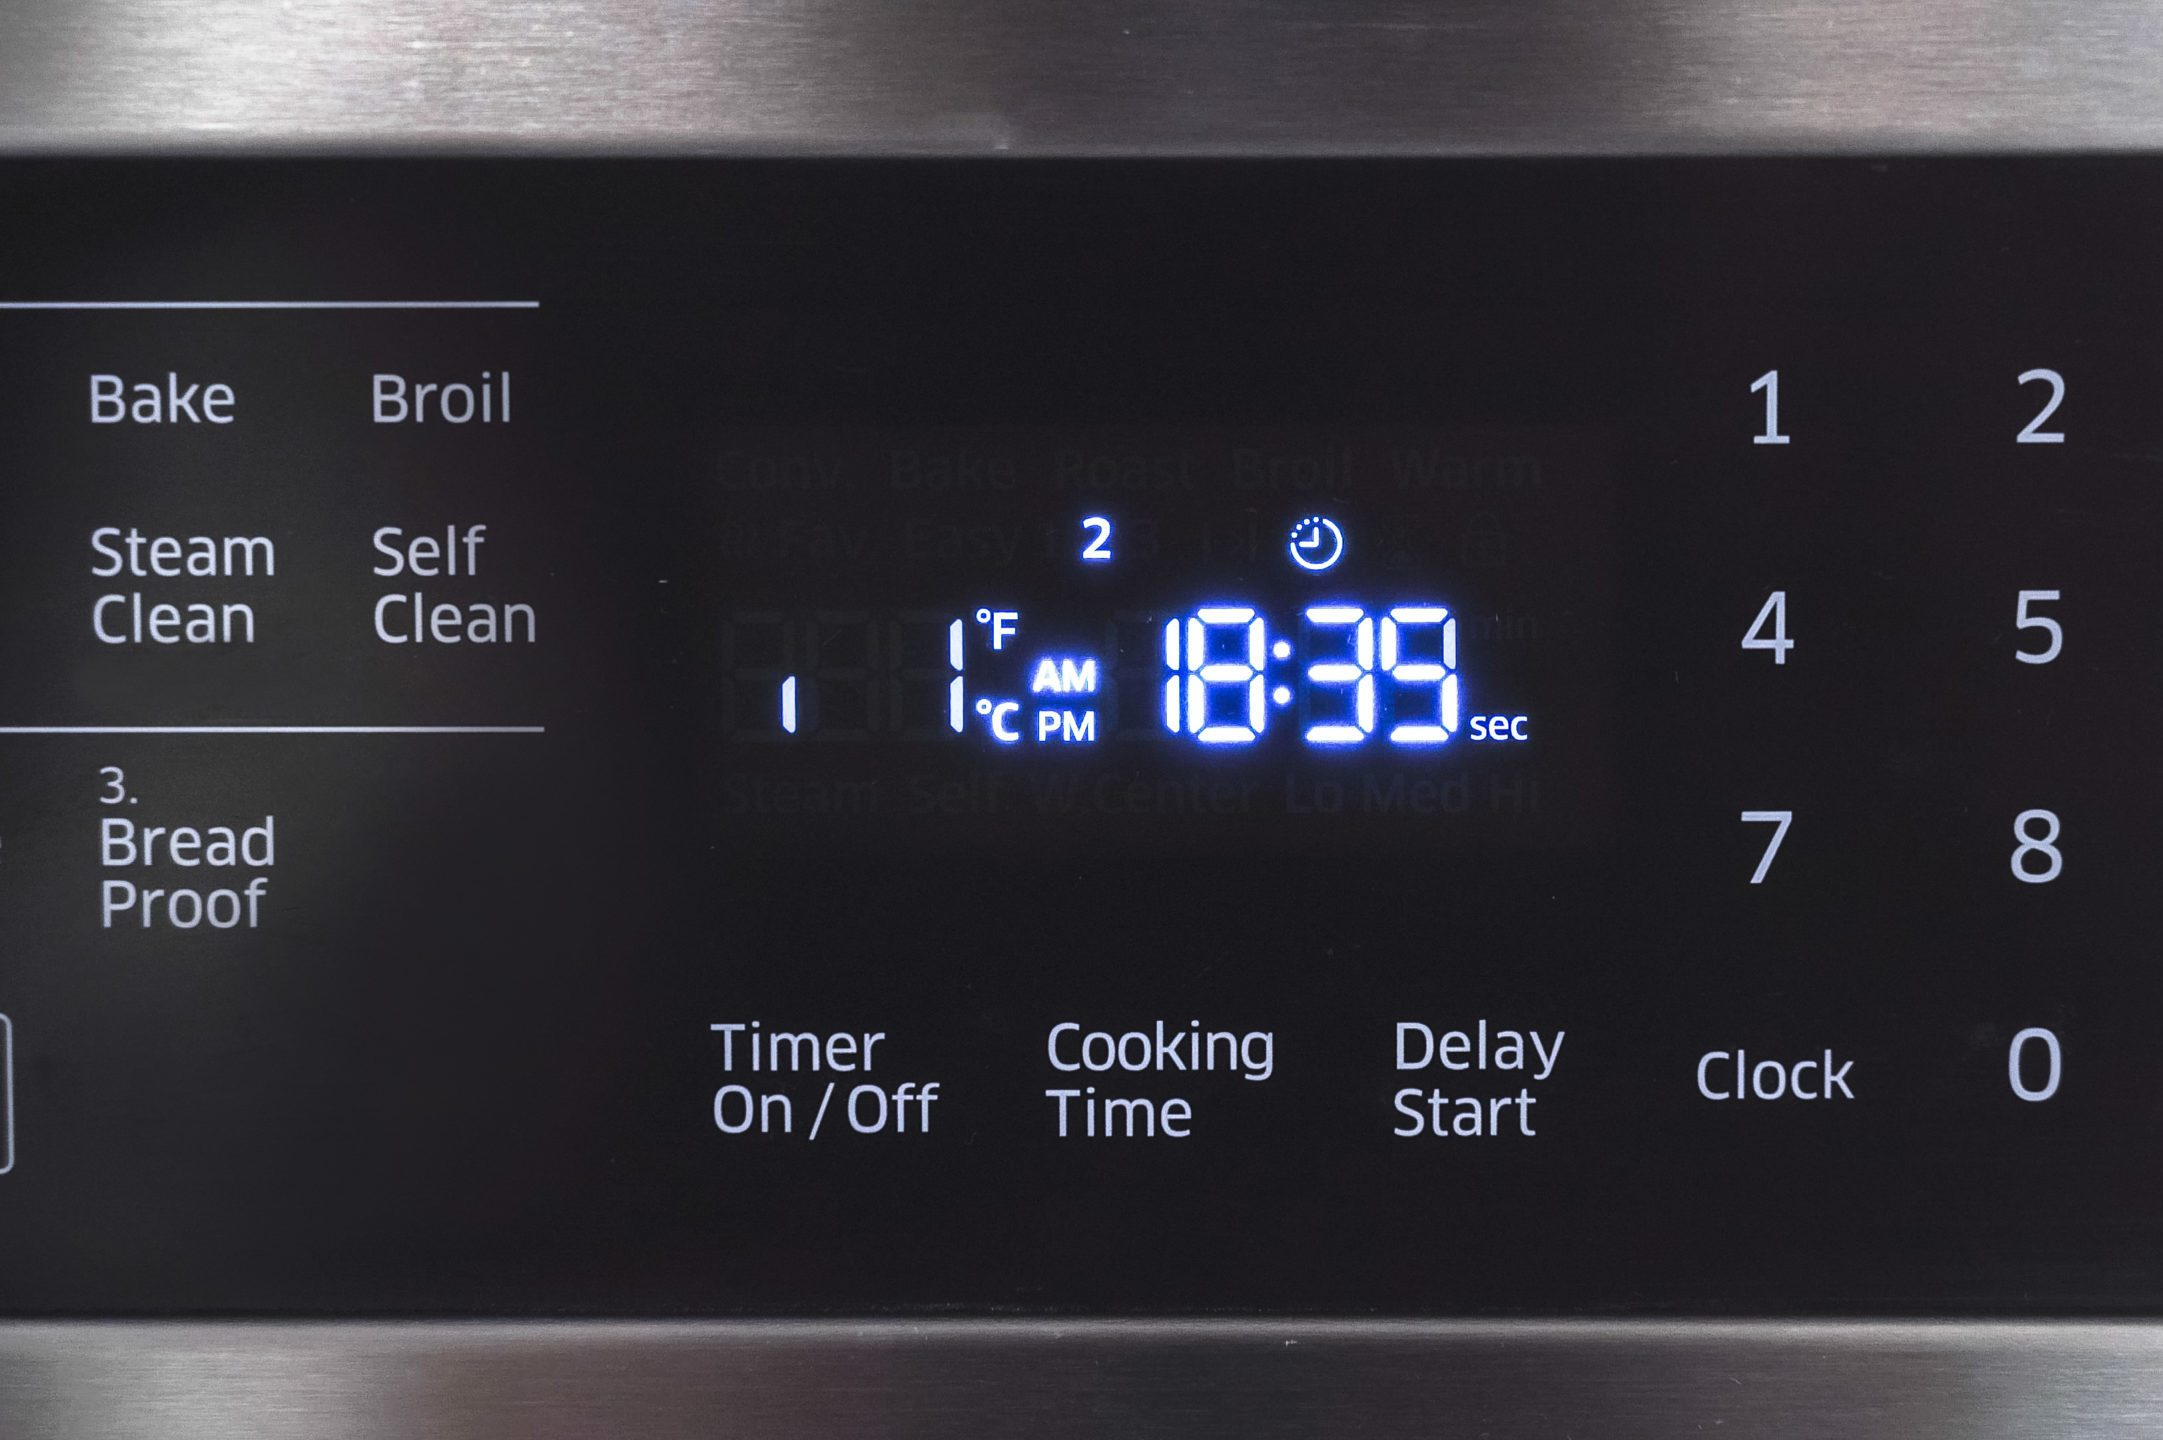 Close up of oven display flickering, control panel blinking. Stove electricity problem